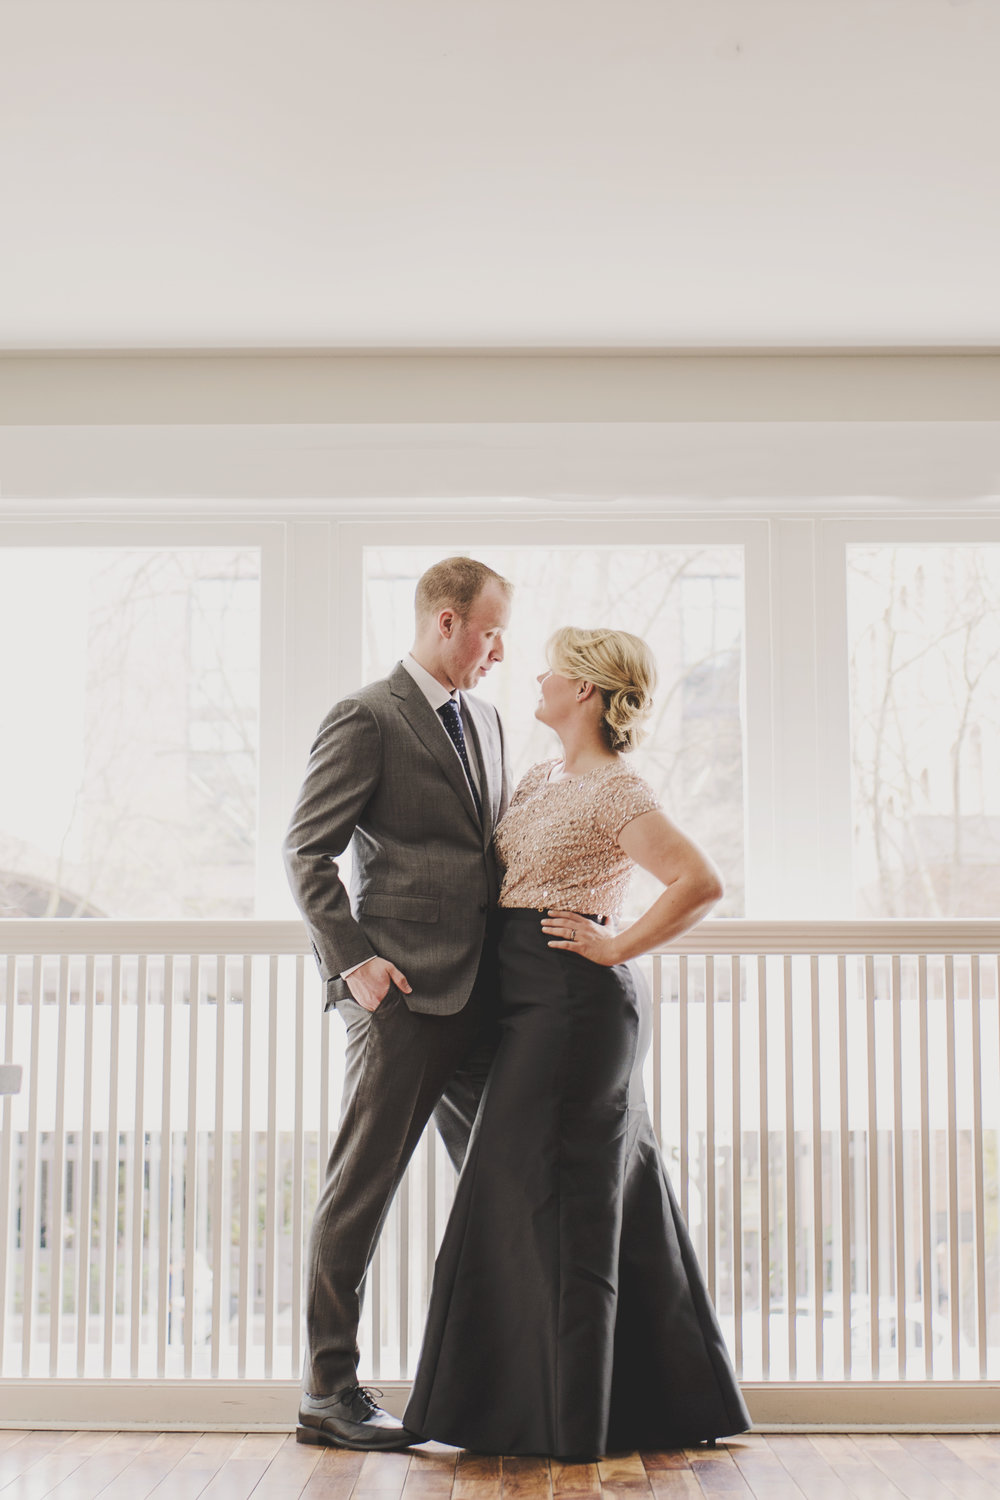 High Fashion Engagement | Urban Engagement | Tulle Skirt Engagement | Montana Wedding Photographer | Kelsey Lane Photography